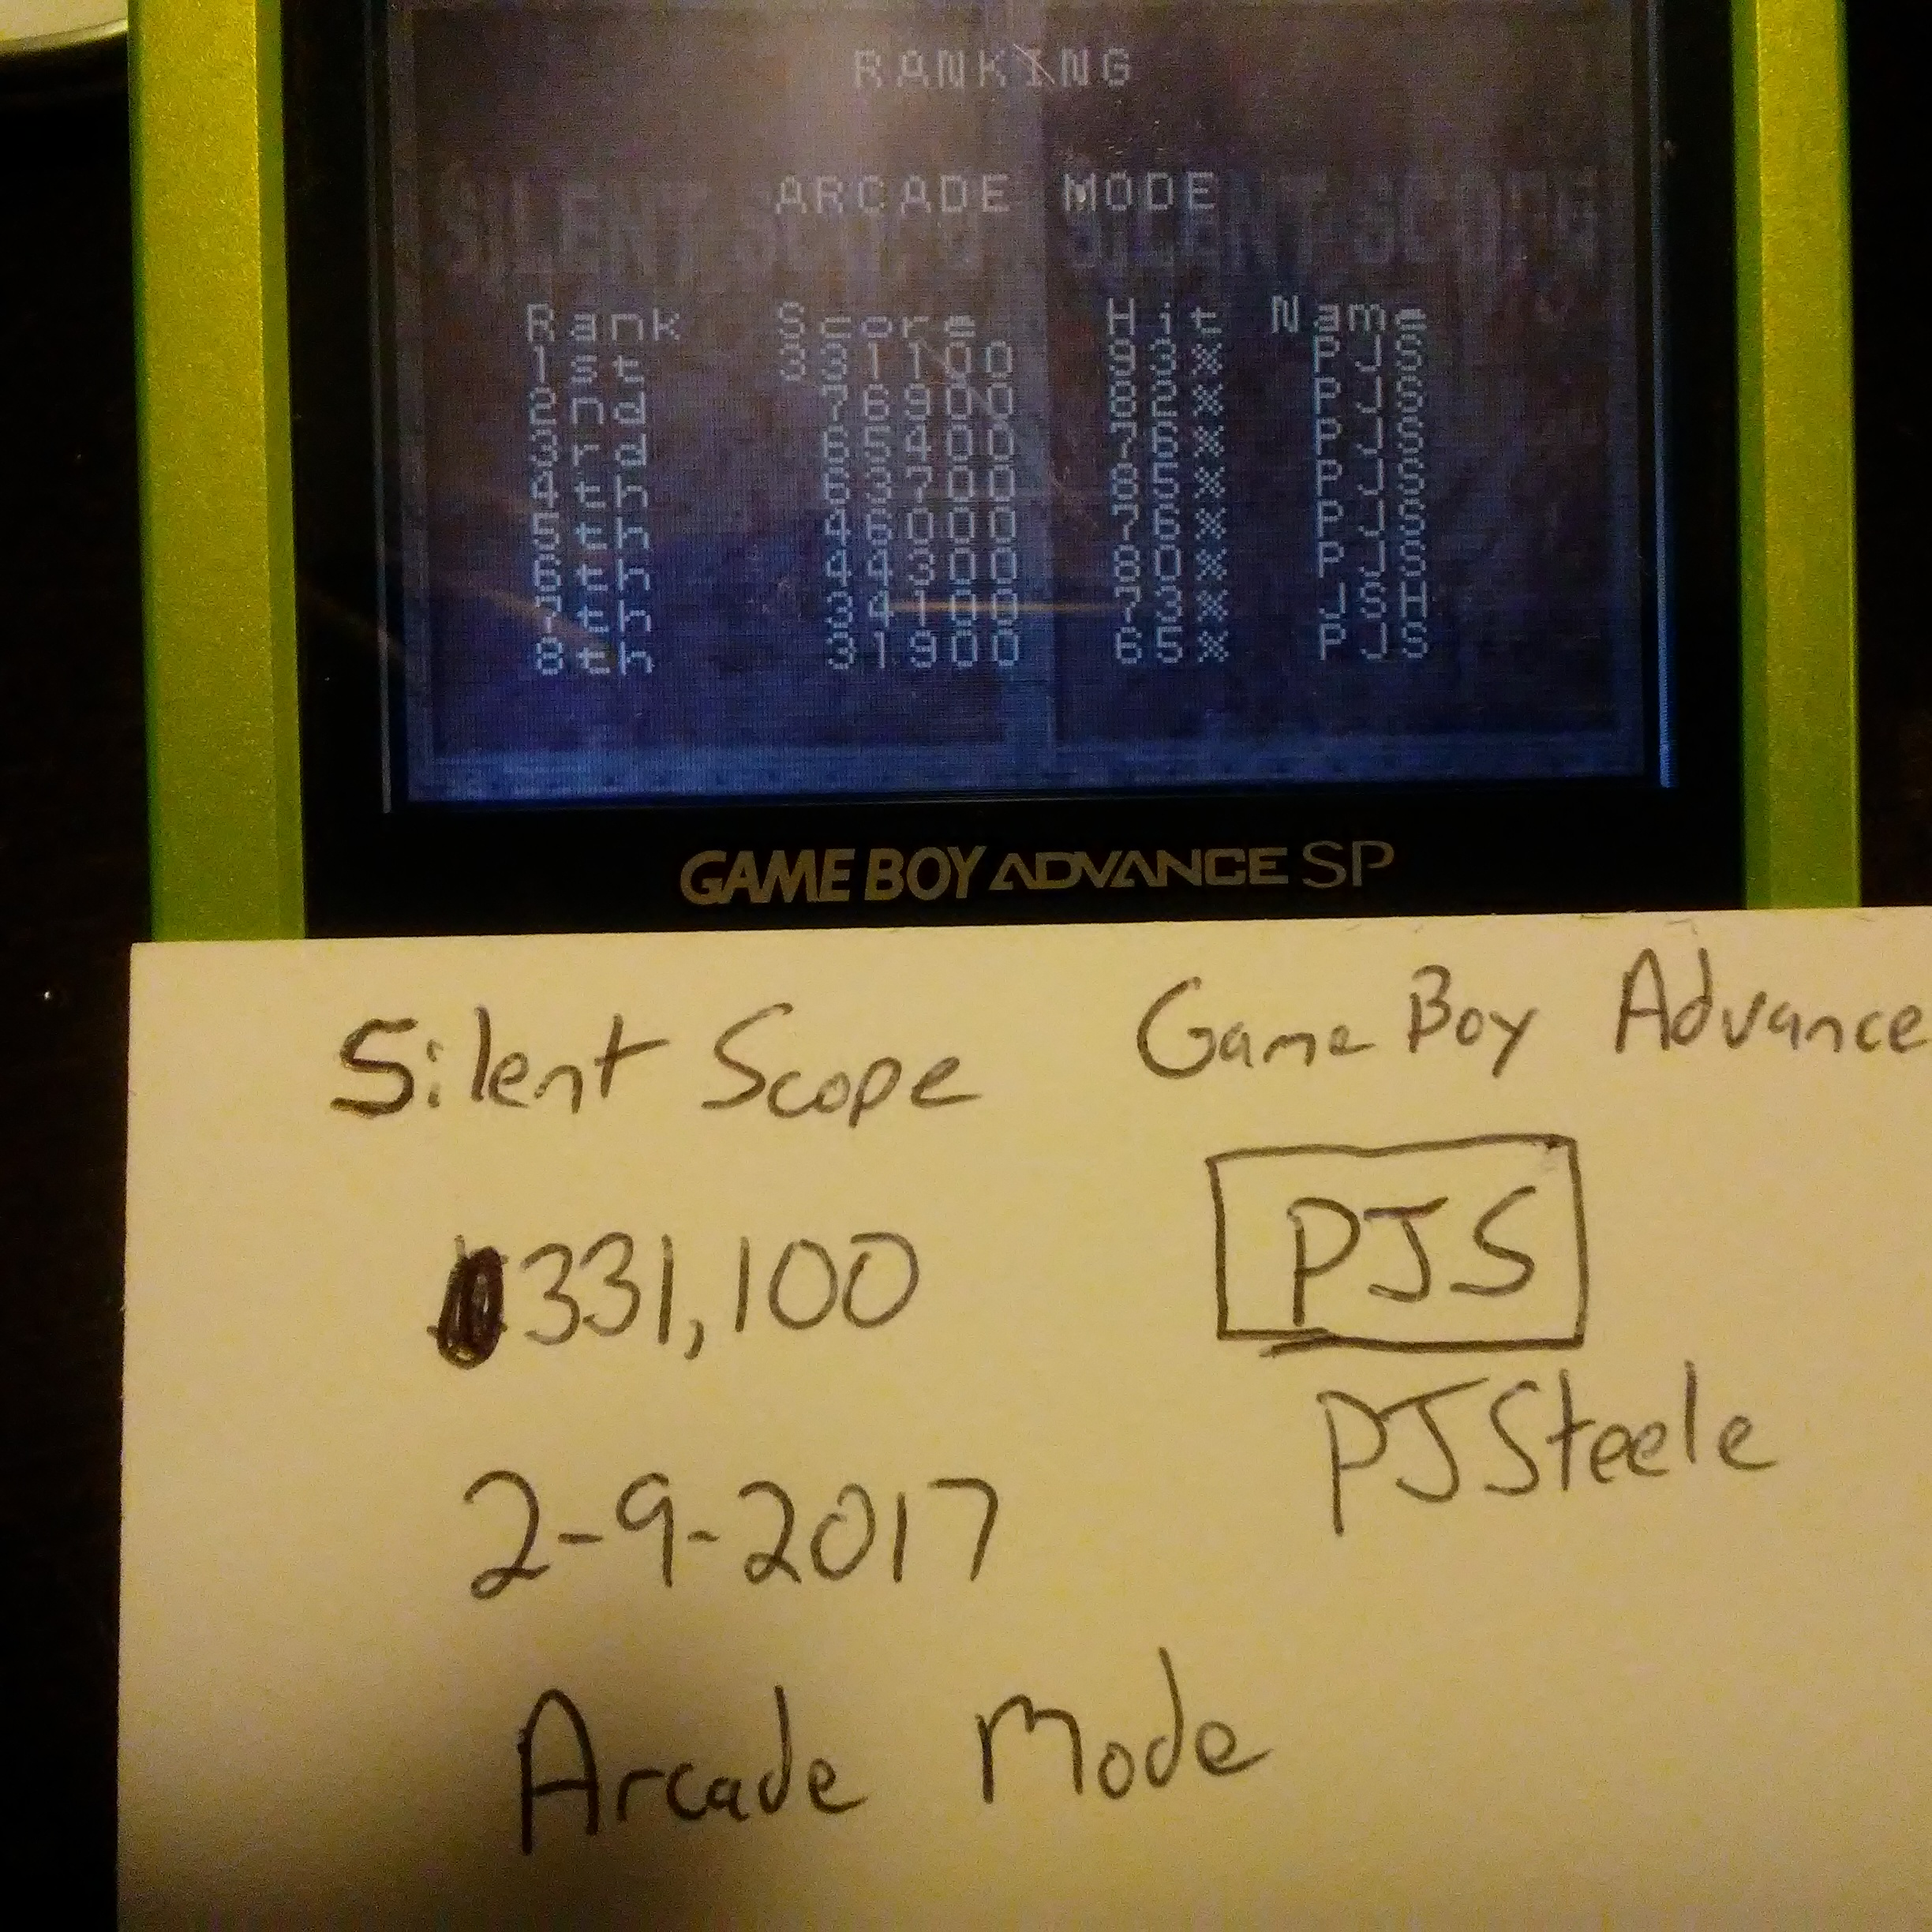 Pjsteele: Silent Scope [Arcade Mode] (GBA) 331,100 points on 2017-02-09 15:39:06